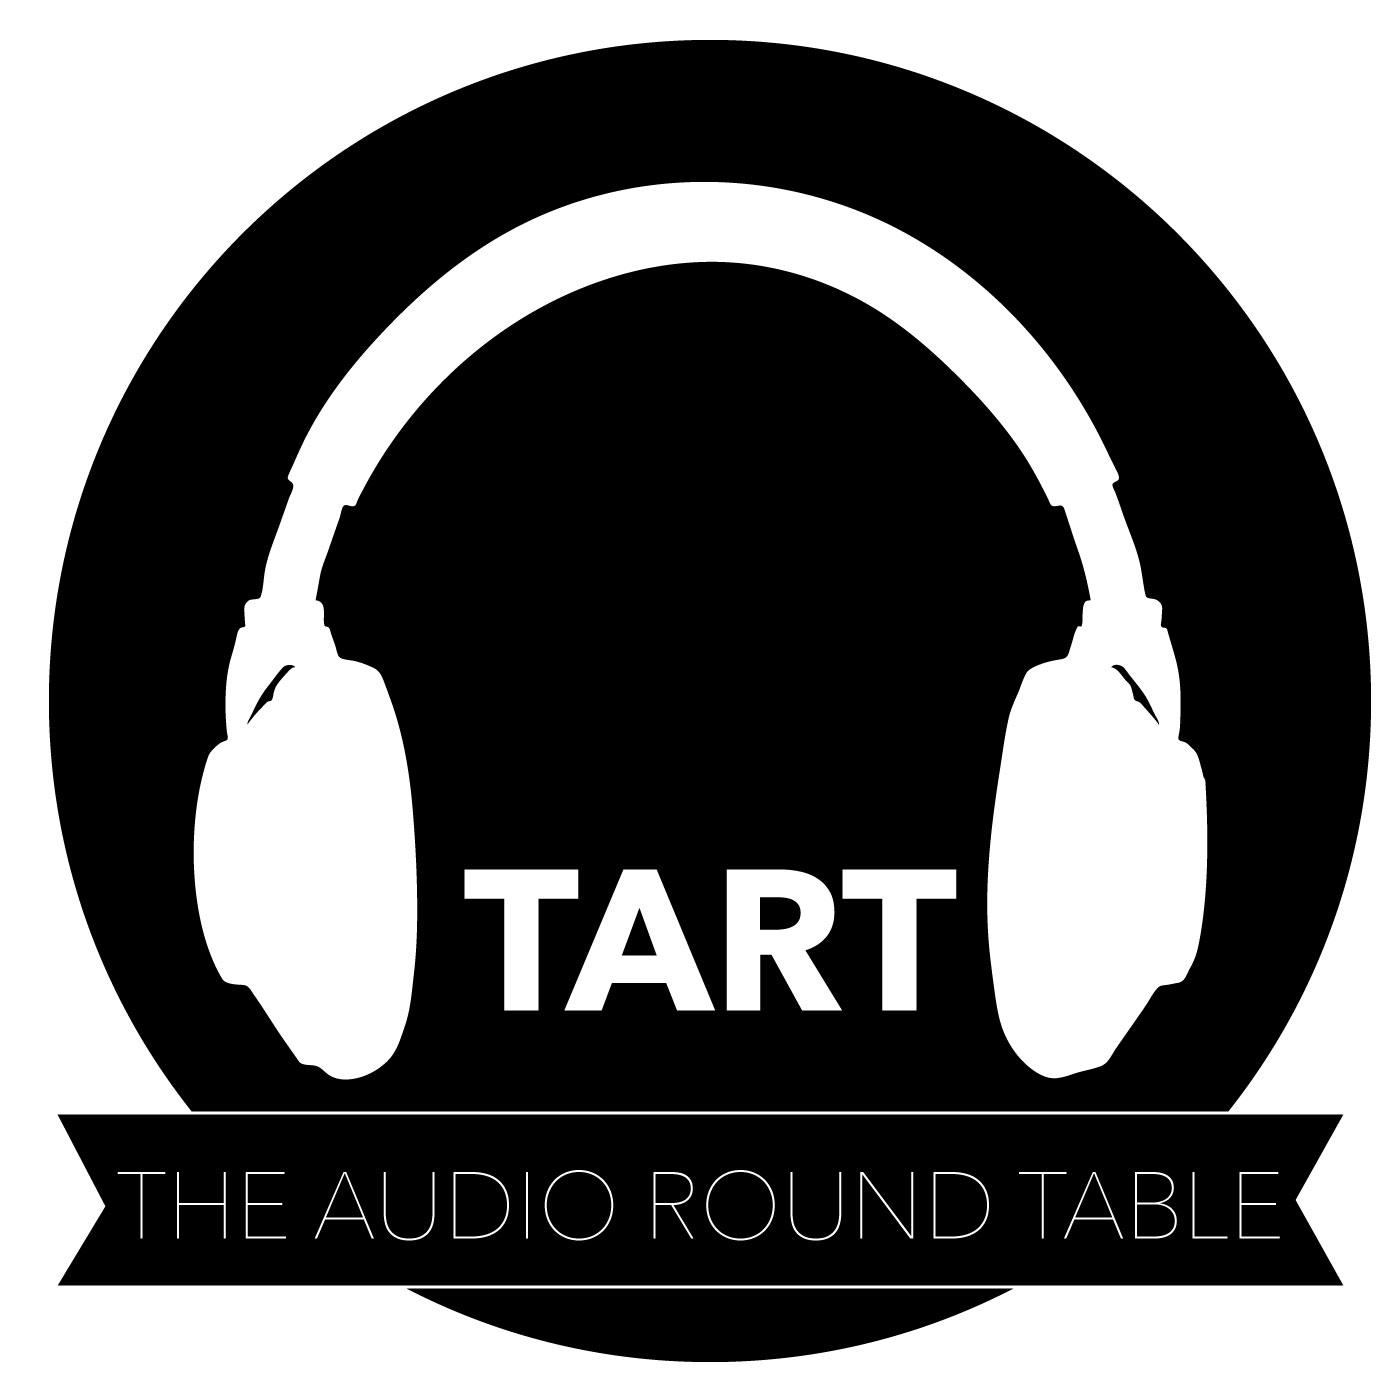 The Audio Round Table